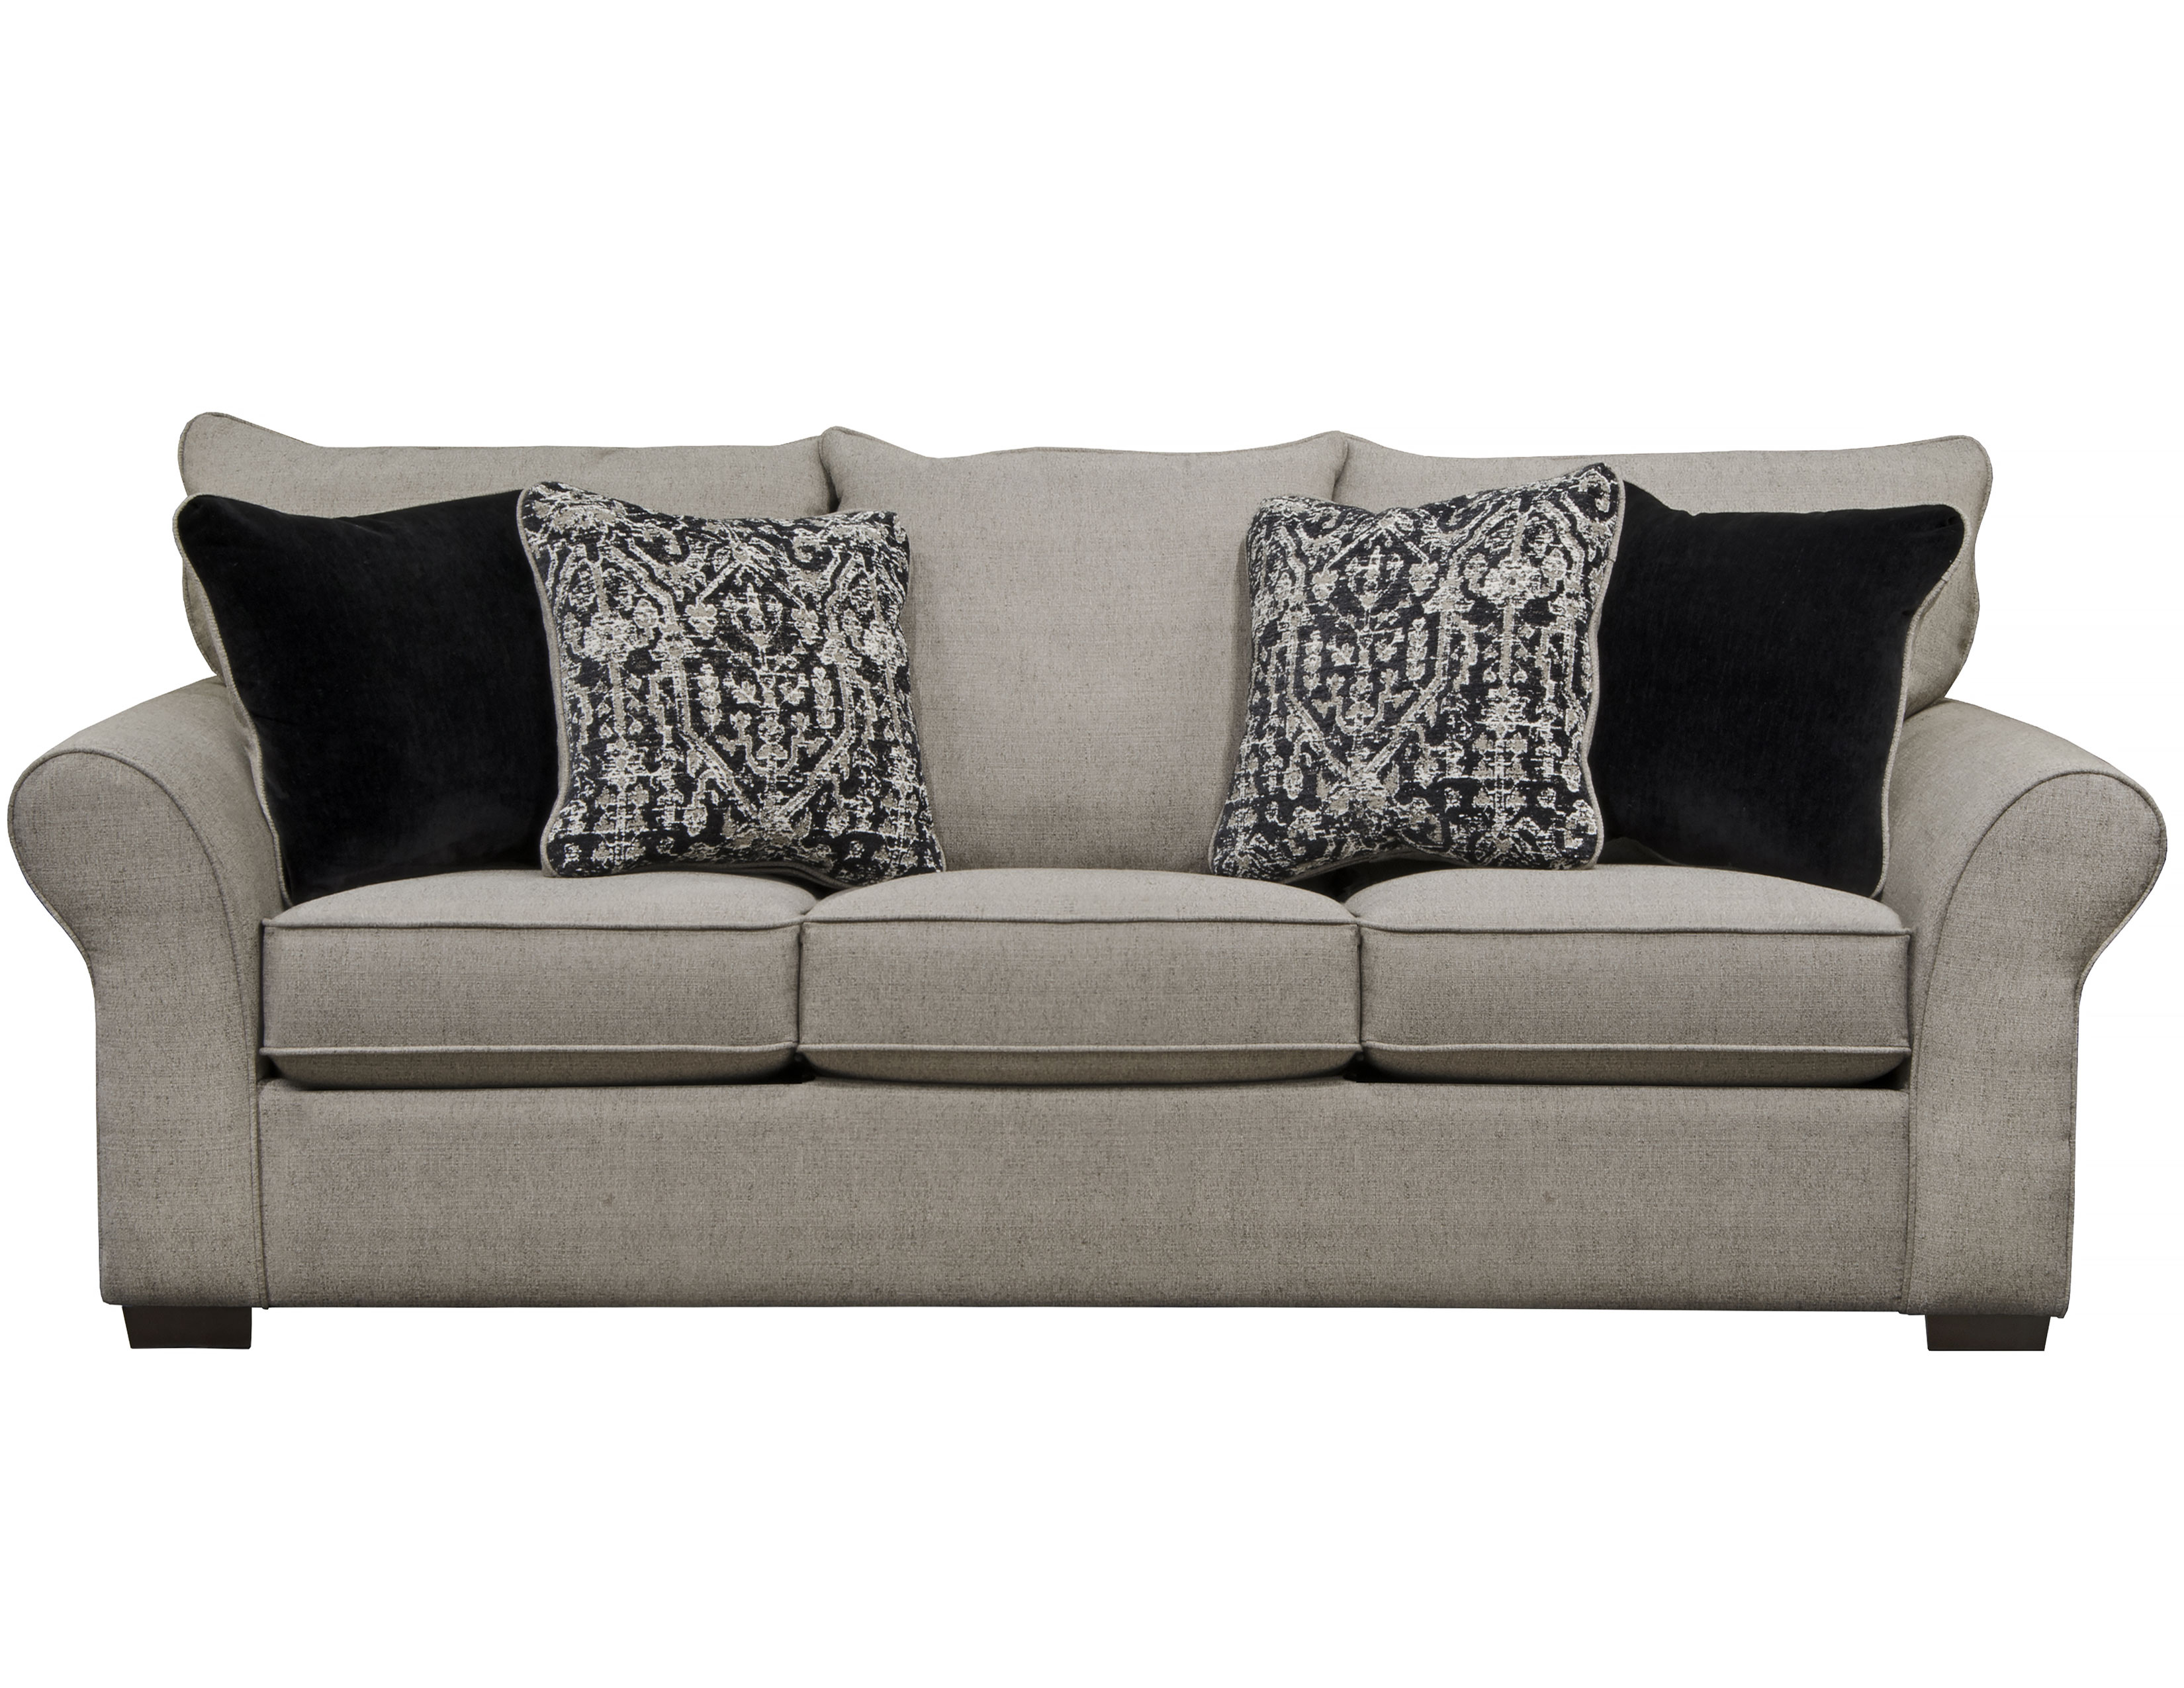 Maddox 96 Sofa In Fossil Includes